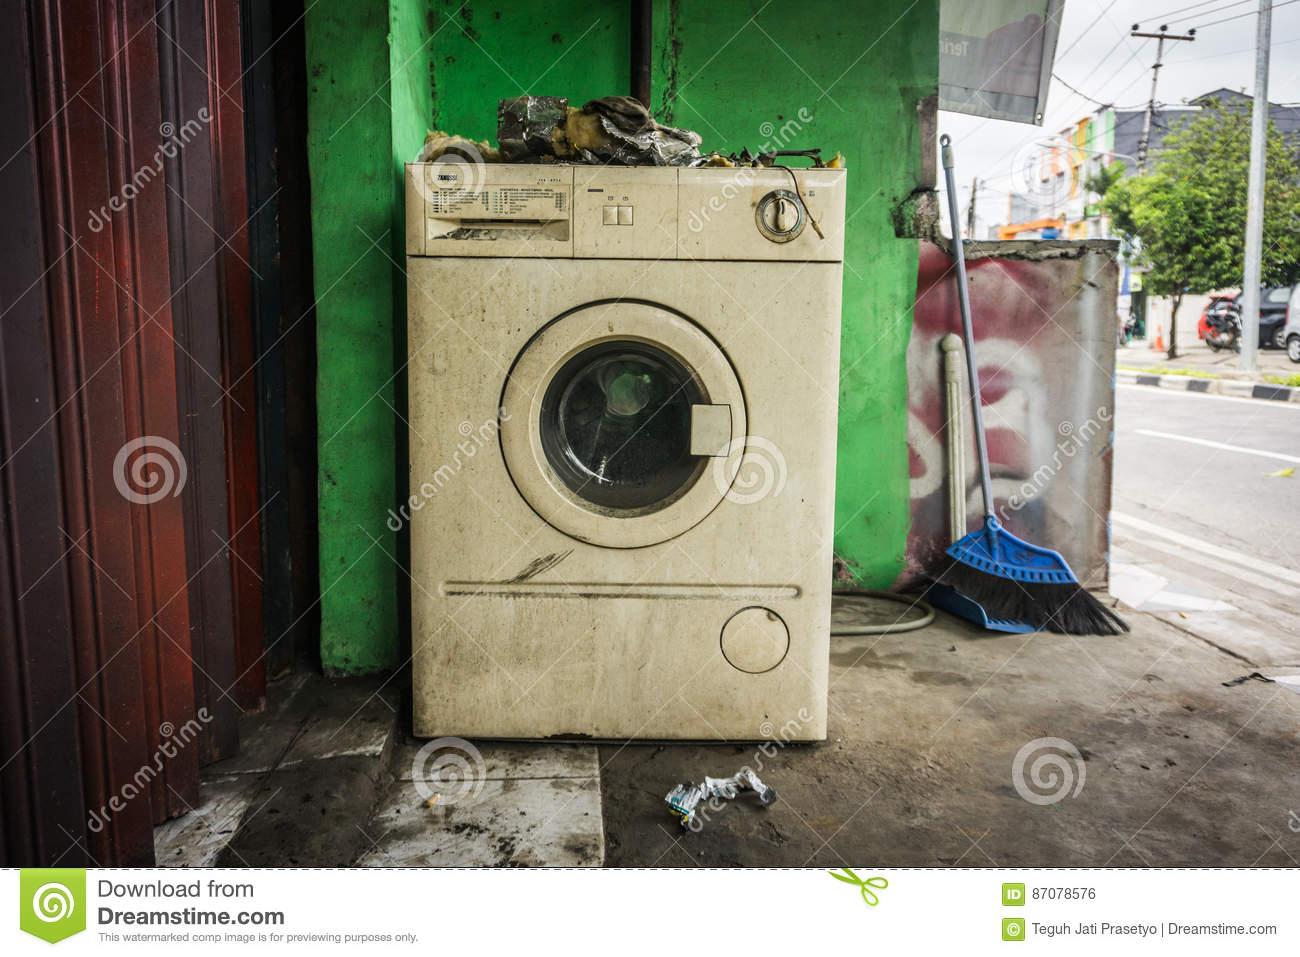 The unused white washing machine with front door near green wall and a broom photo abandoned in a street photo taken in